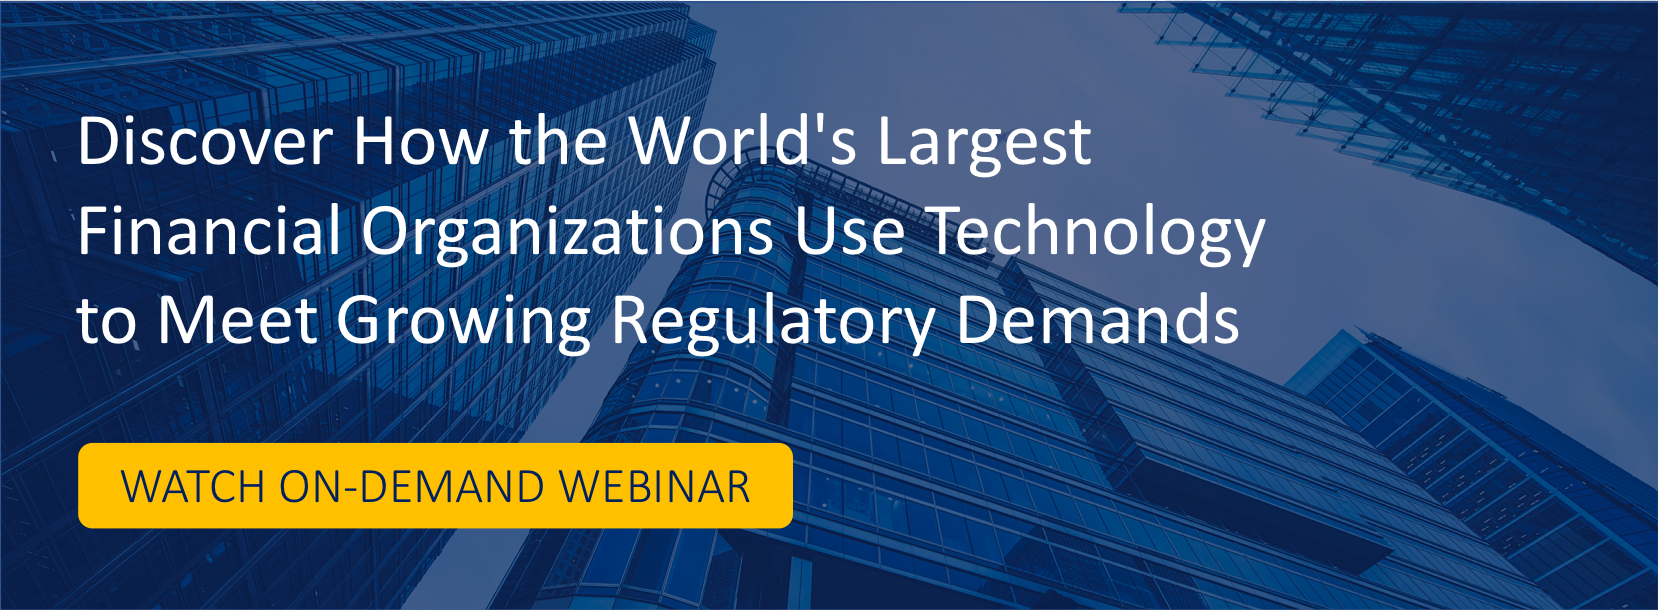 Discover How the World's Largest Financial Organizations Use Technology to Meet Growing Regulatory Demands